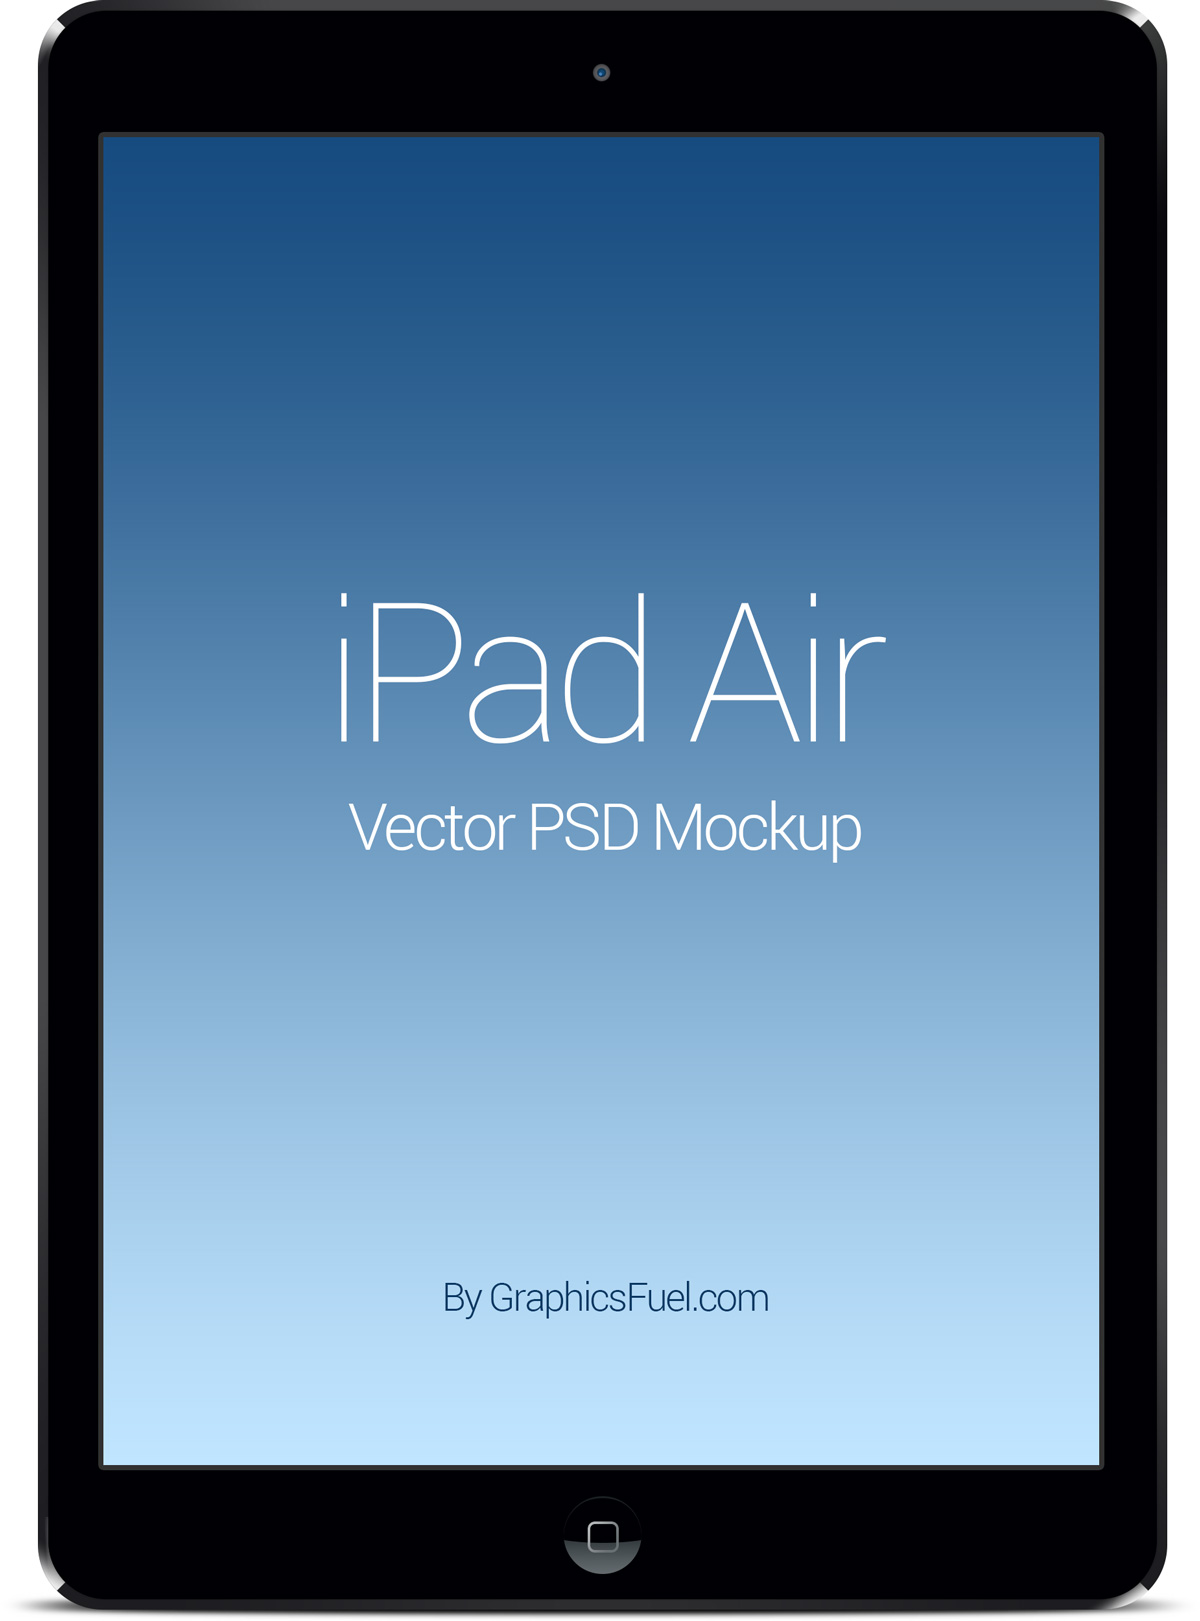 ipad air psd mockup, Powerpoint templates